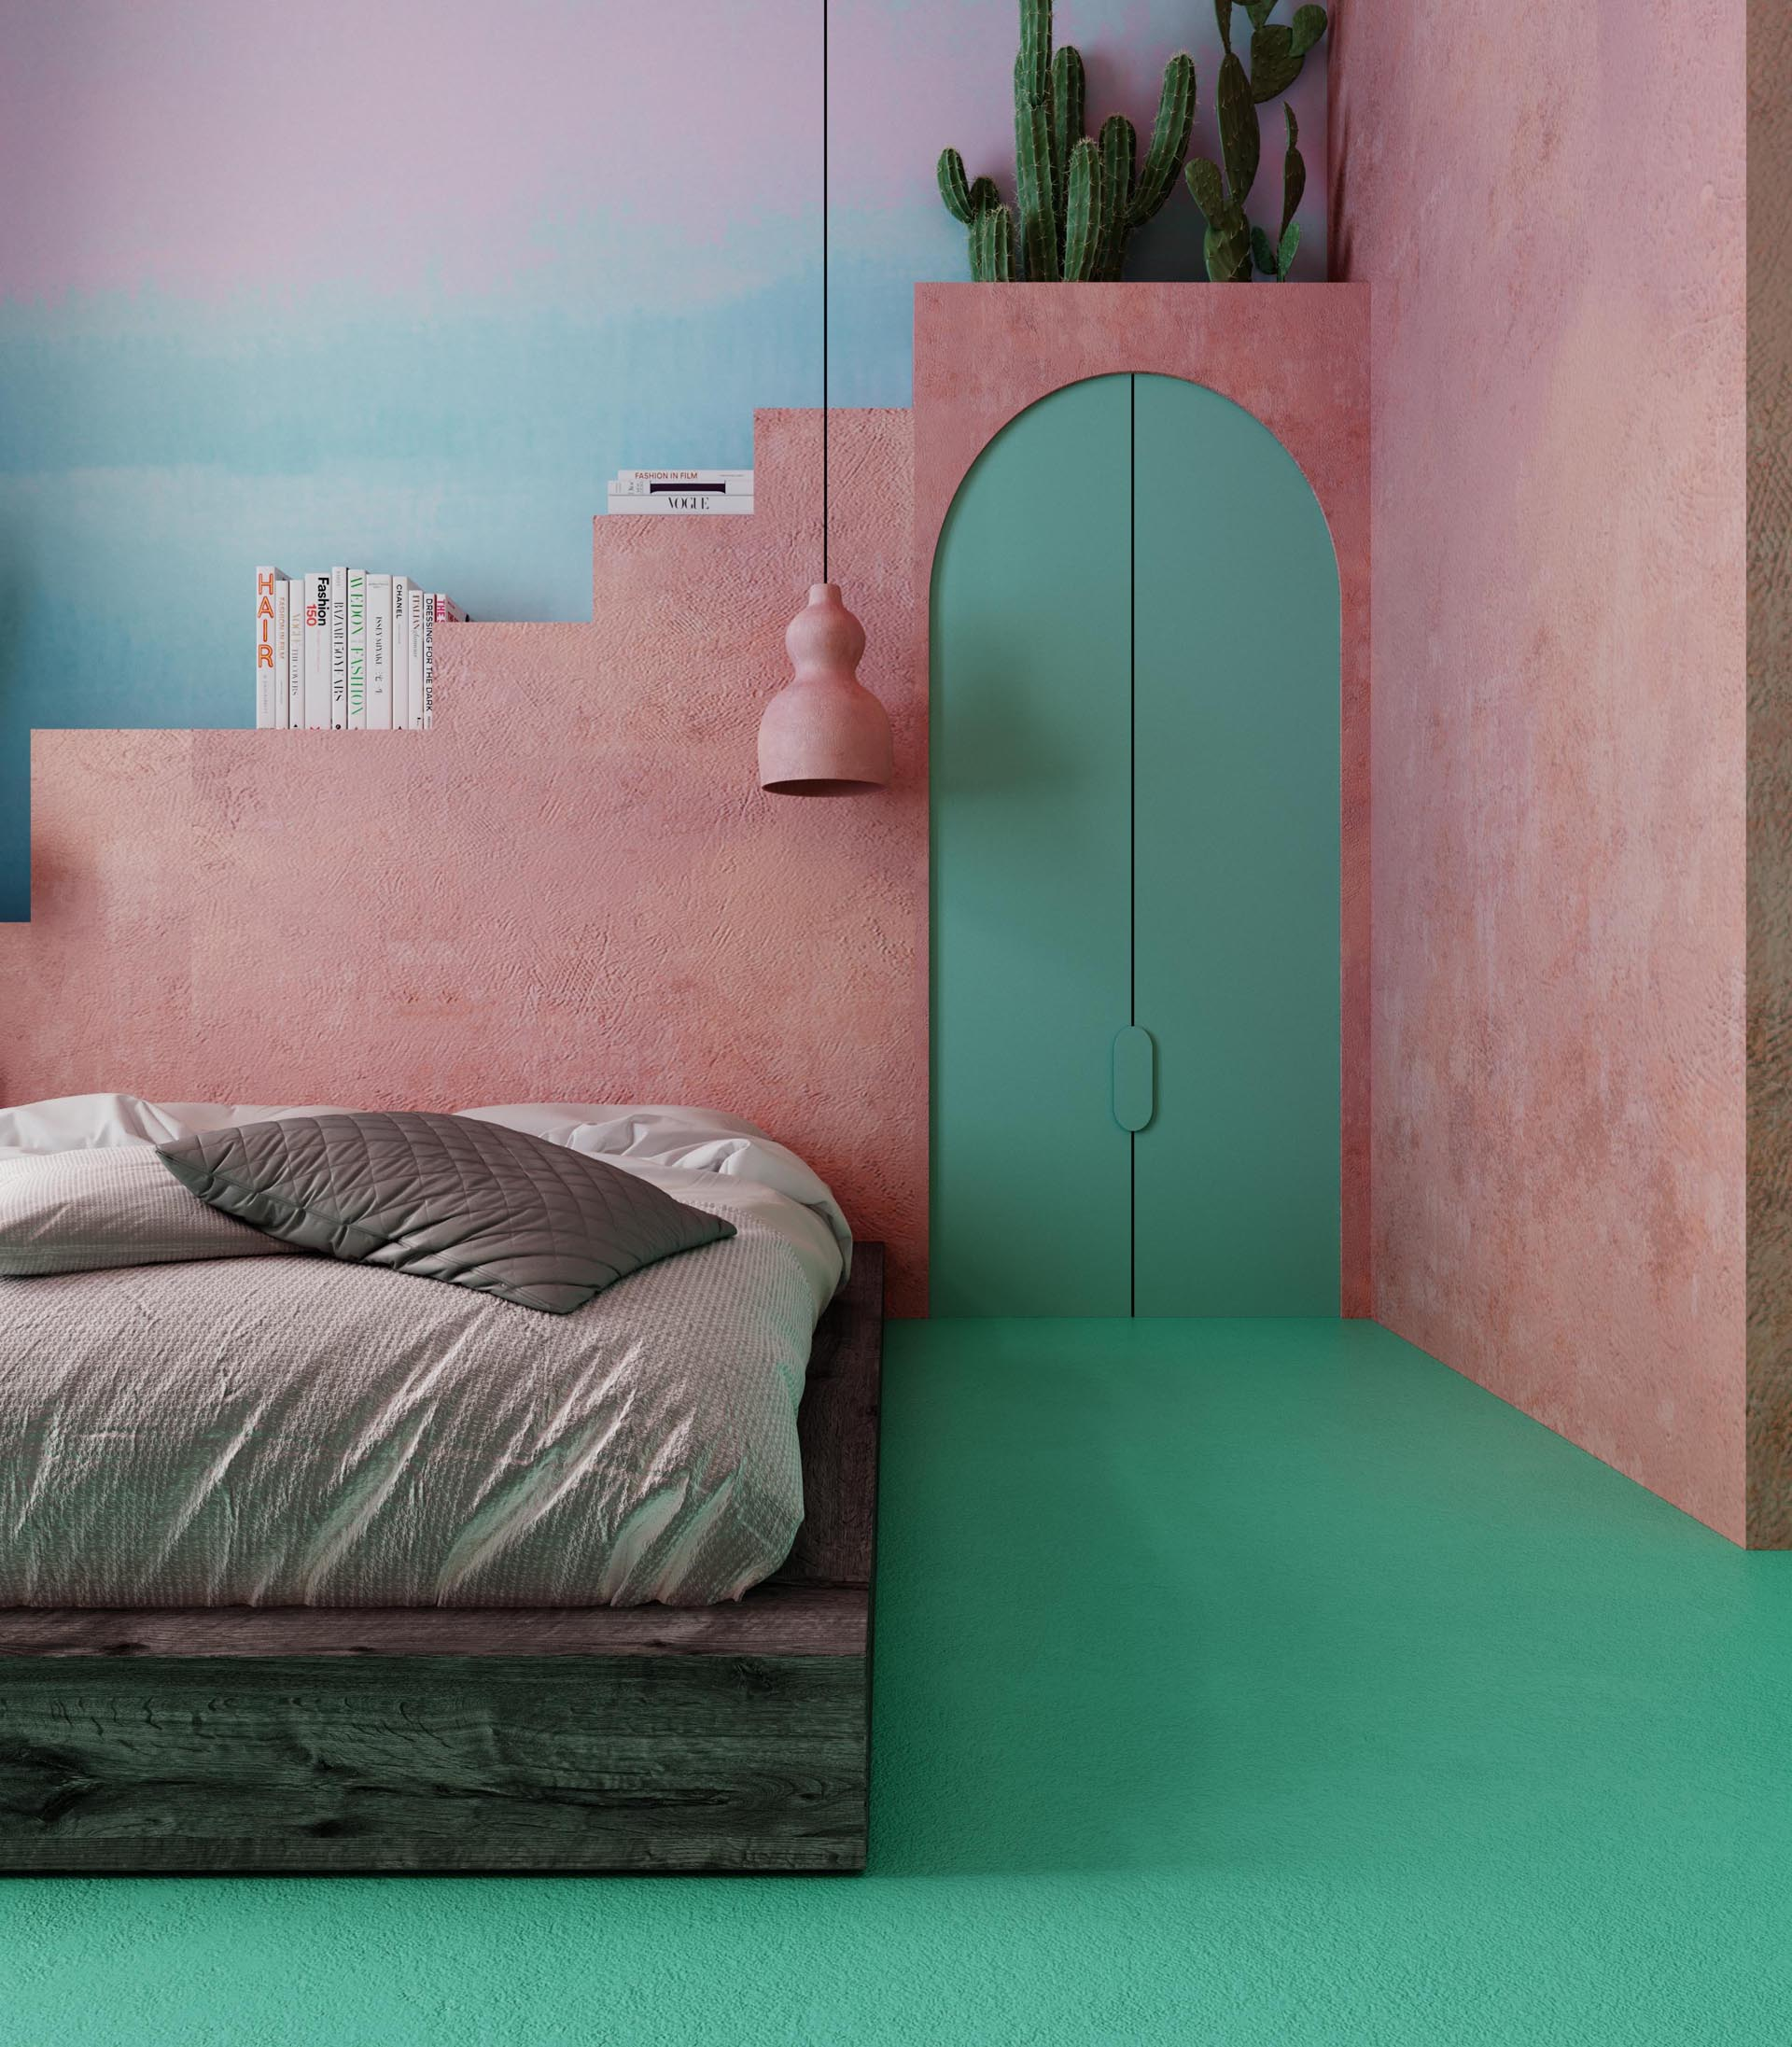 In this bedroom, the bed frame is made from old timber, the pendant lamp is made from pink clay, while a small closet is located behind the green doors. Behind the bed is a shelving unit that resembles steps, and was constructed using building blocks covered with plaster, imitating the plaster which can be found in Mexico.